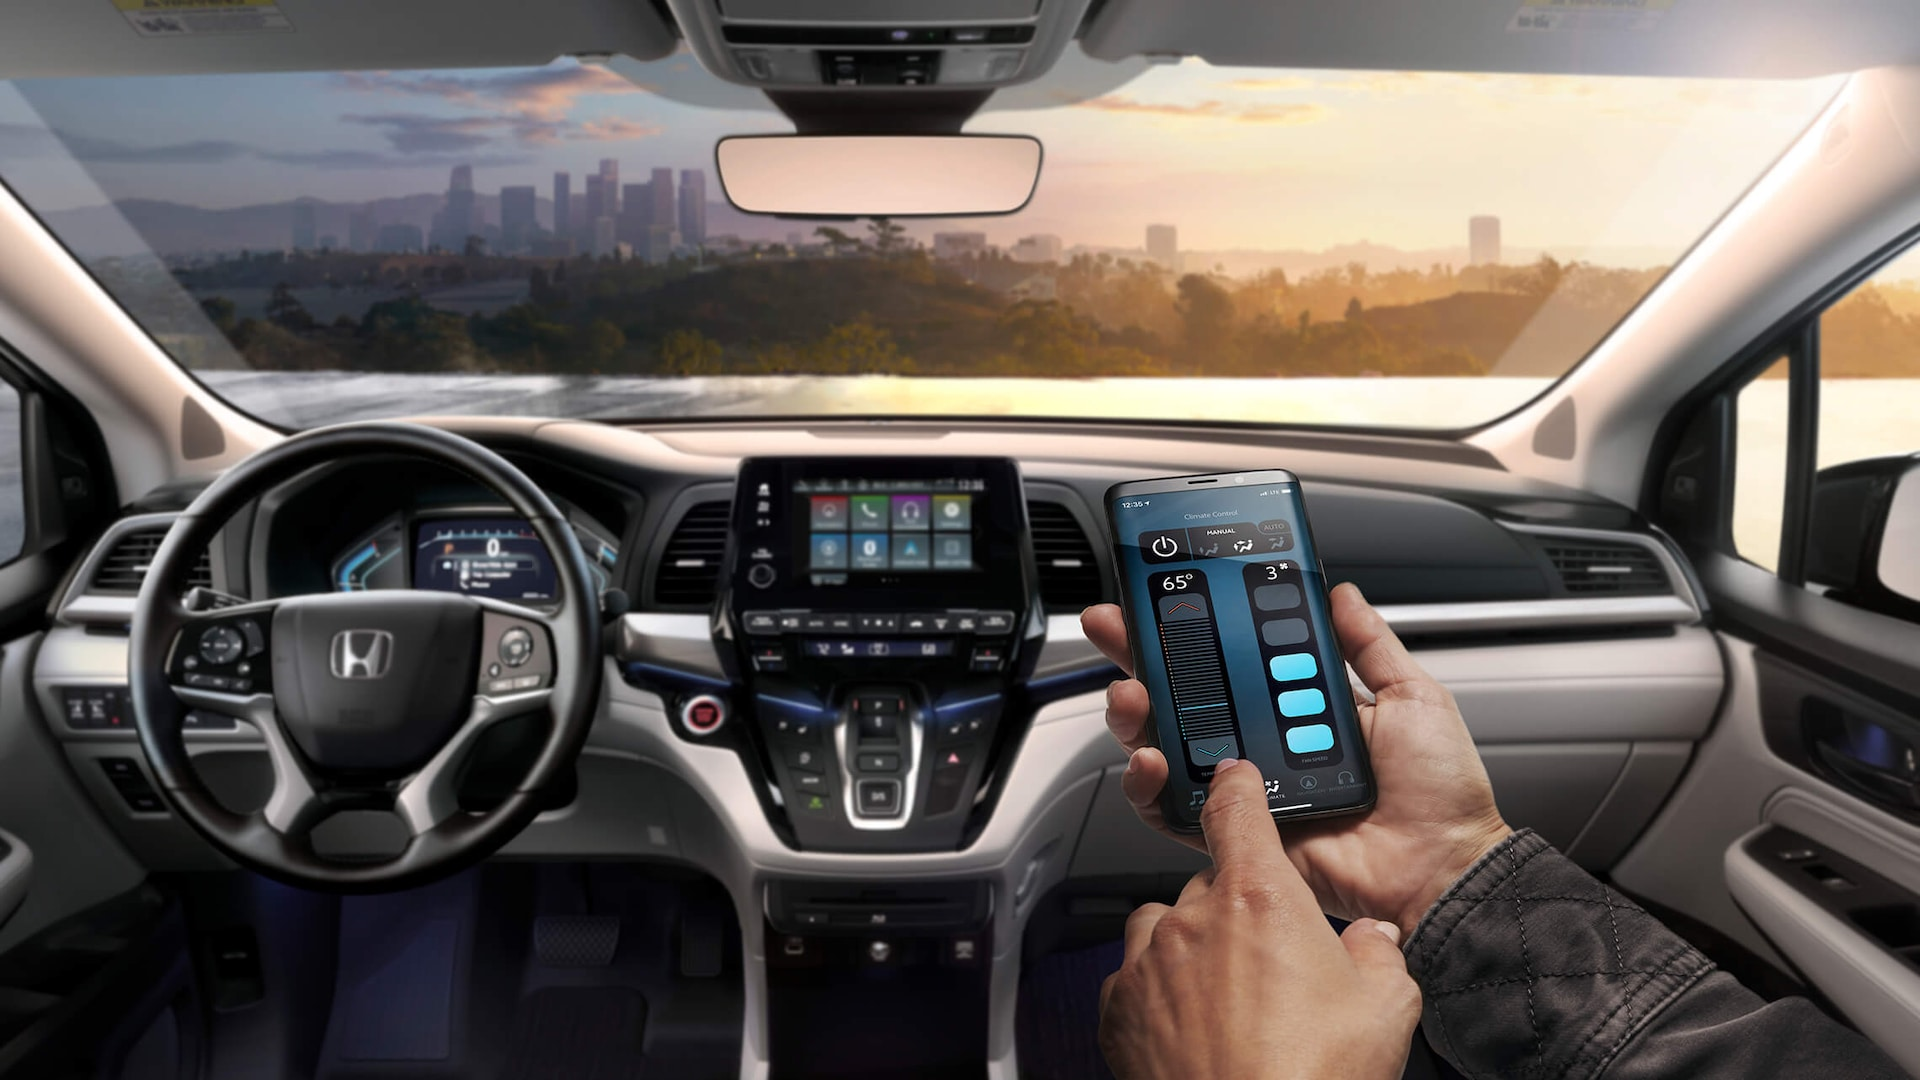 Close-up of a hand holding a smartphone, showing the CabinControl® app's climate control screen, in the 2021 Honda Odyssey.